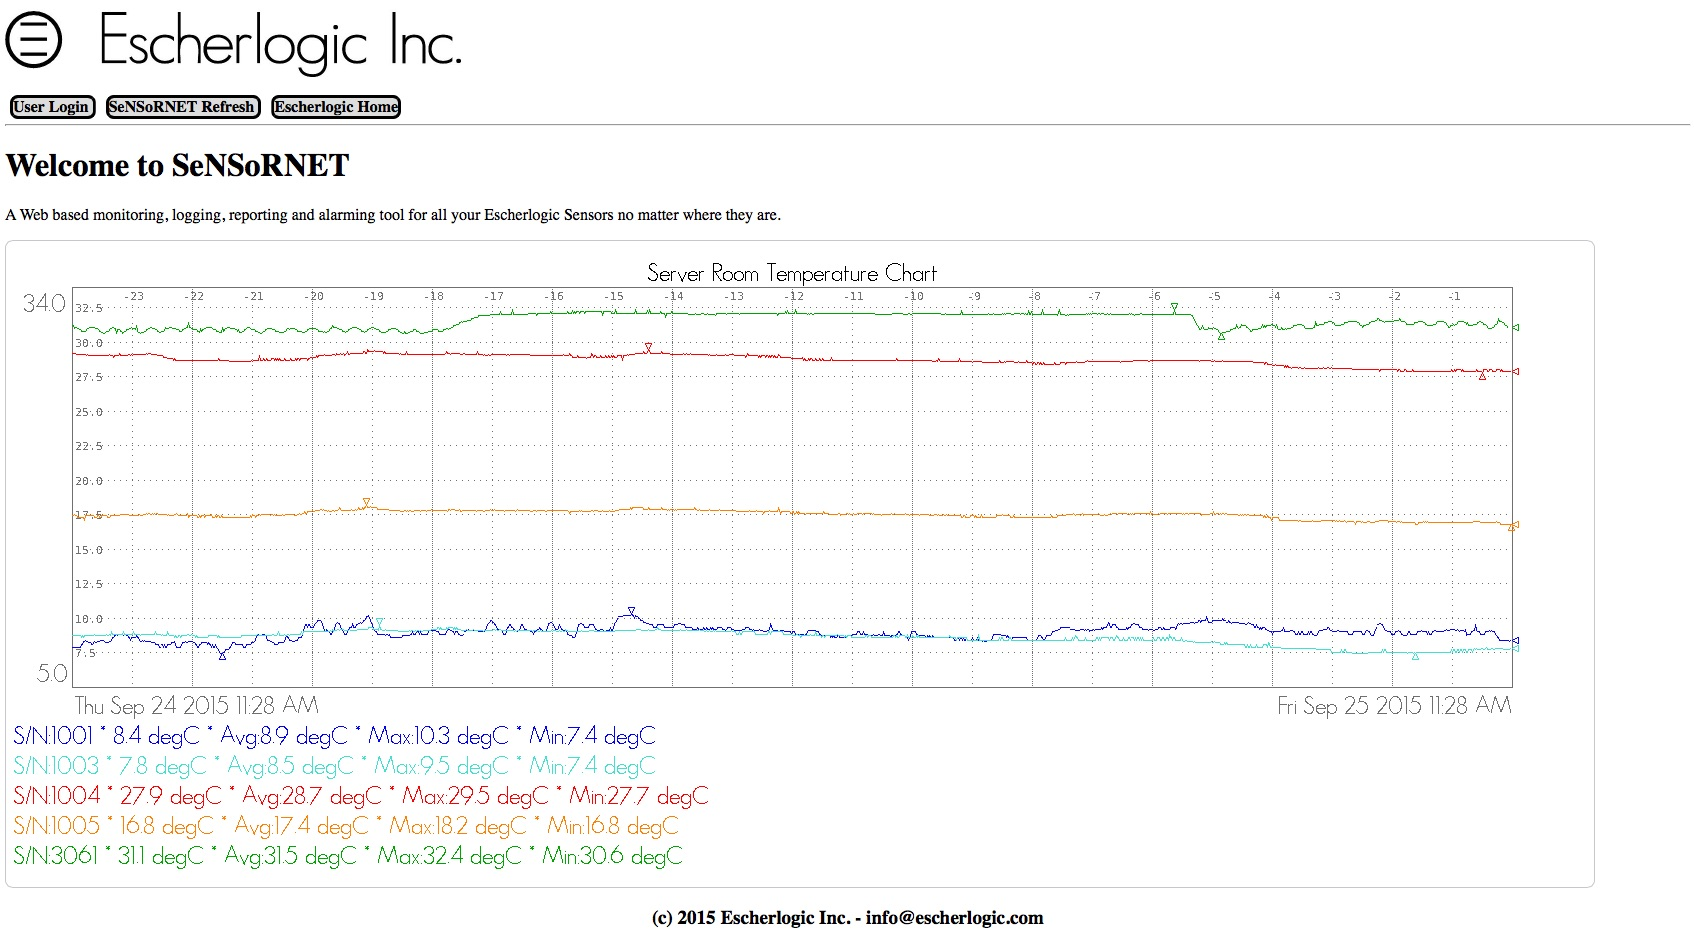 SeNSoRNET's home page shows the last 24hr temperatures in our Server Room.